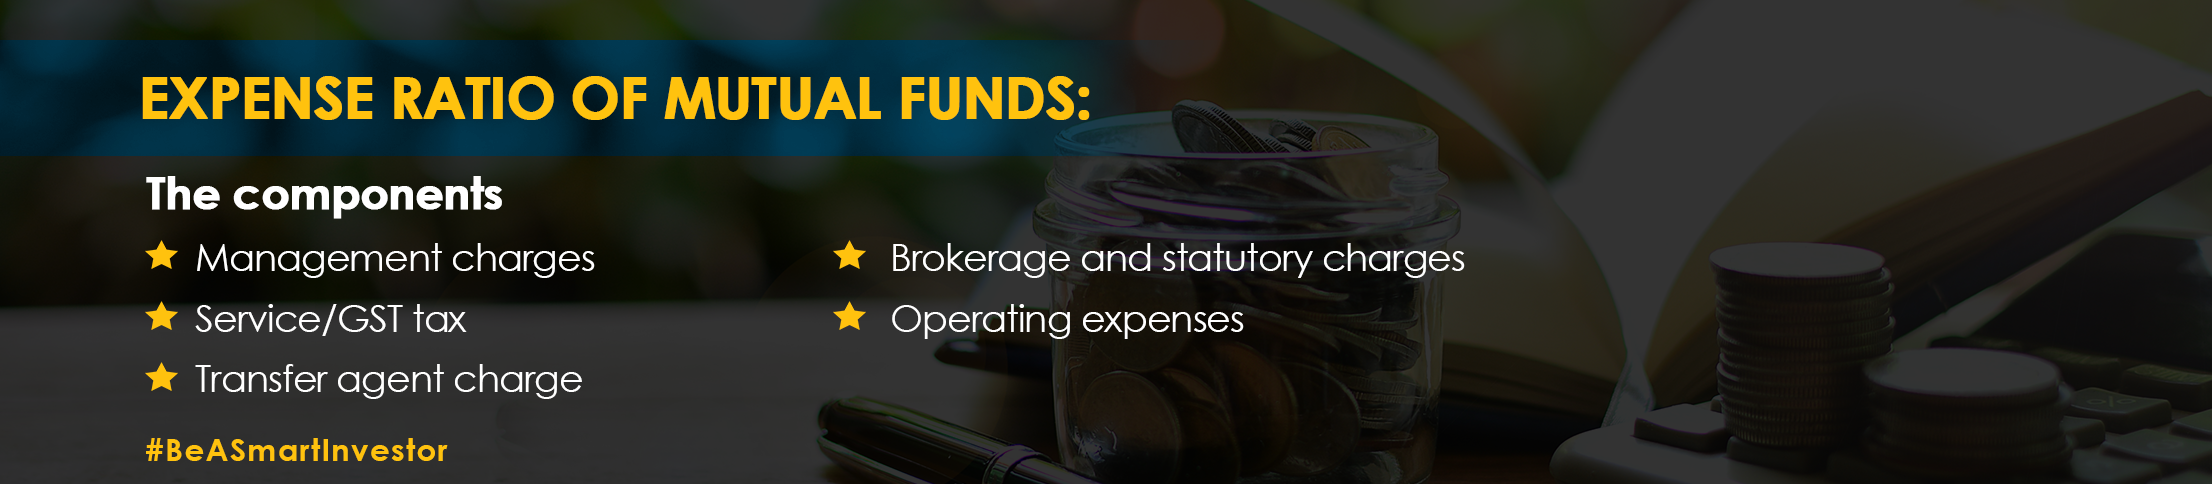 Total Expense Ratio Know All About Total Expense Ratio of Mutual funds